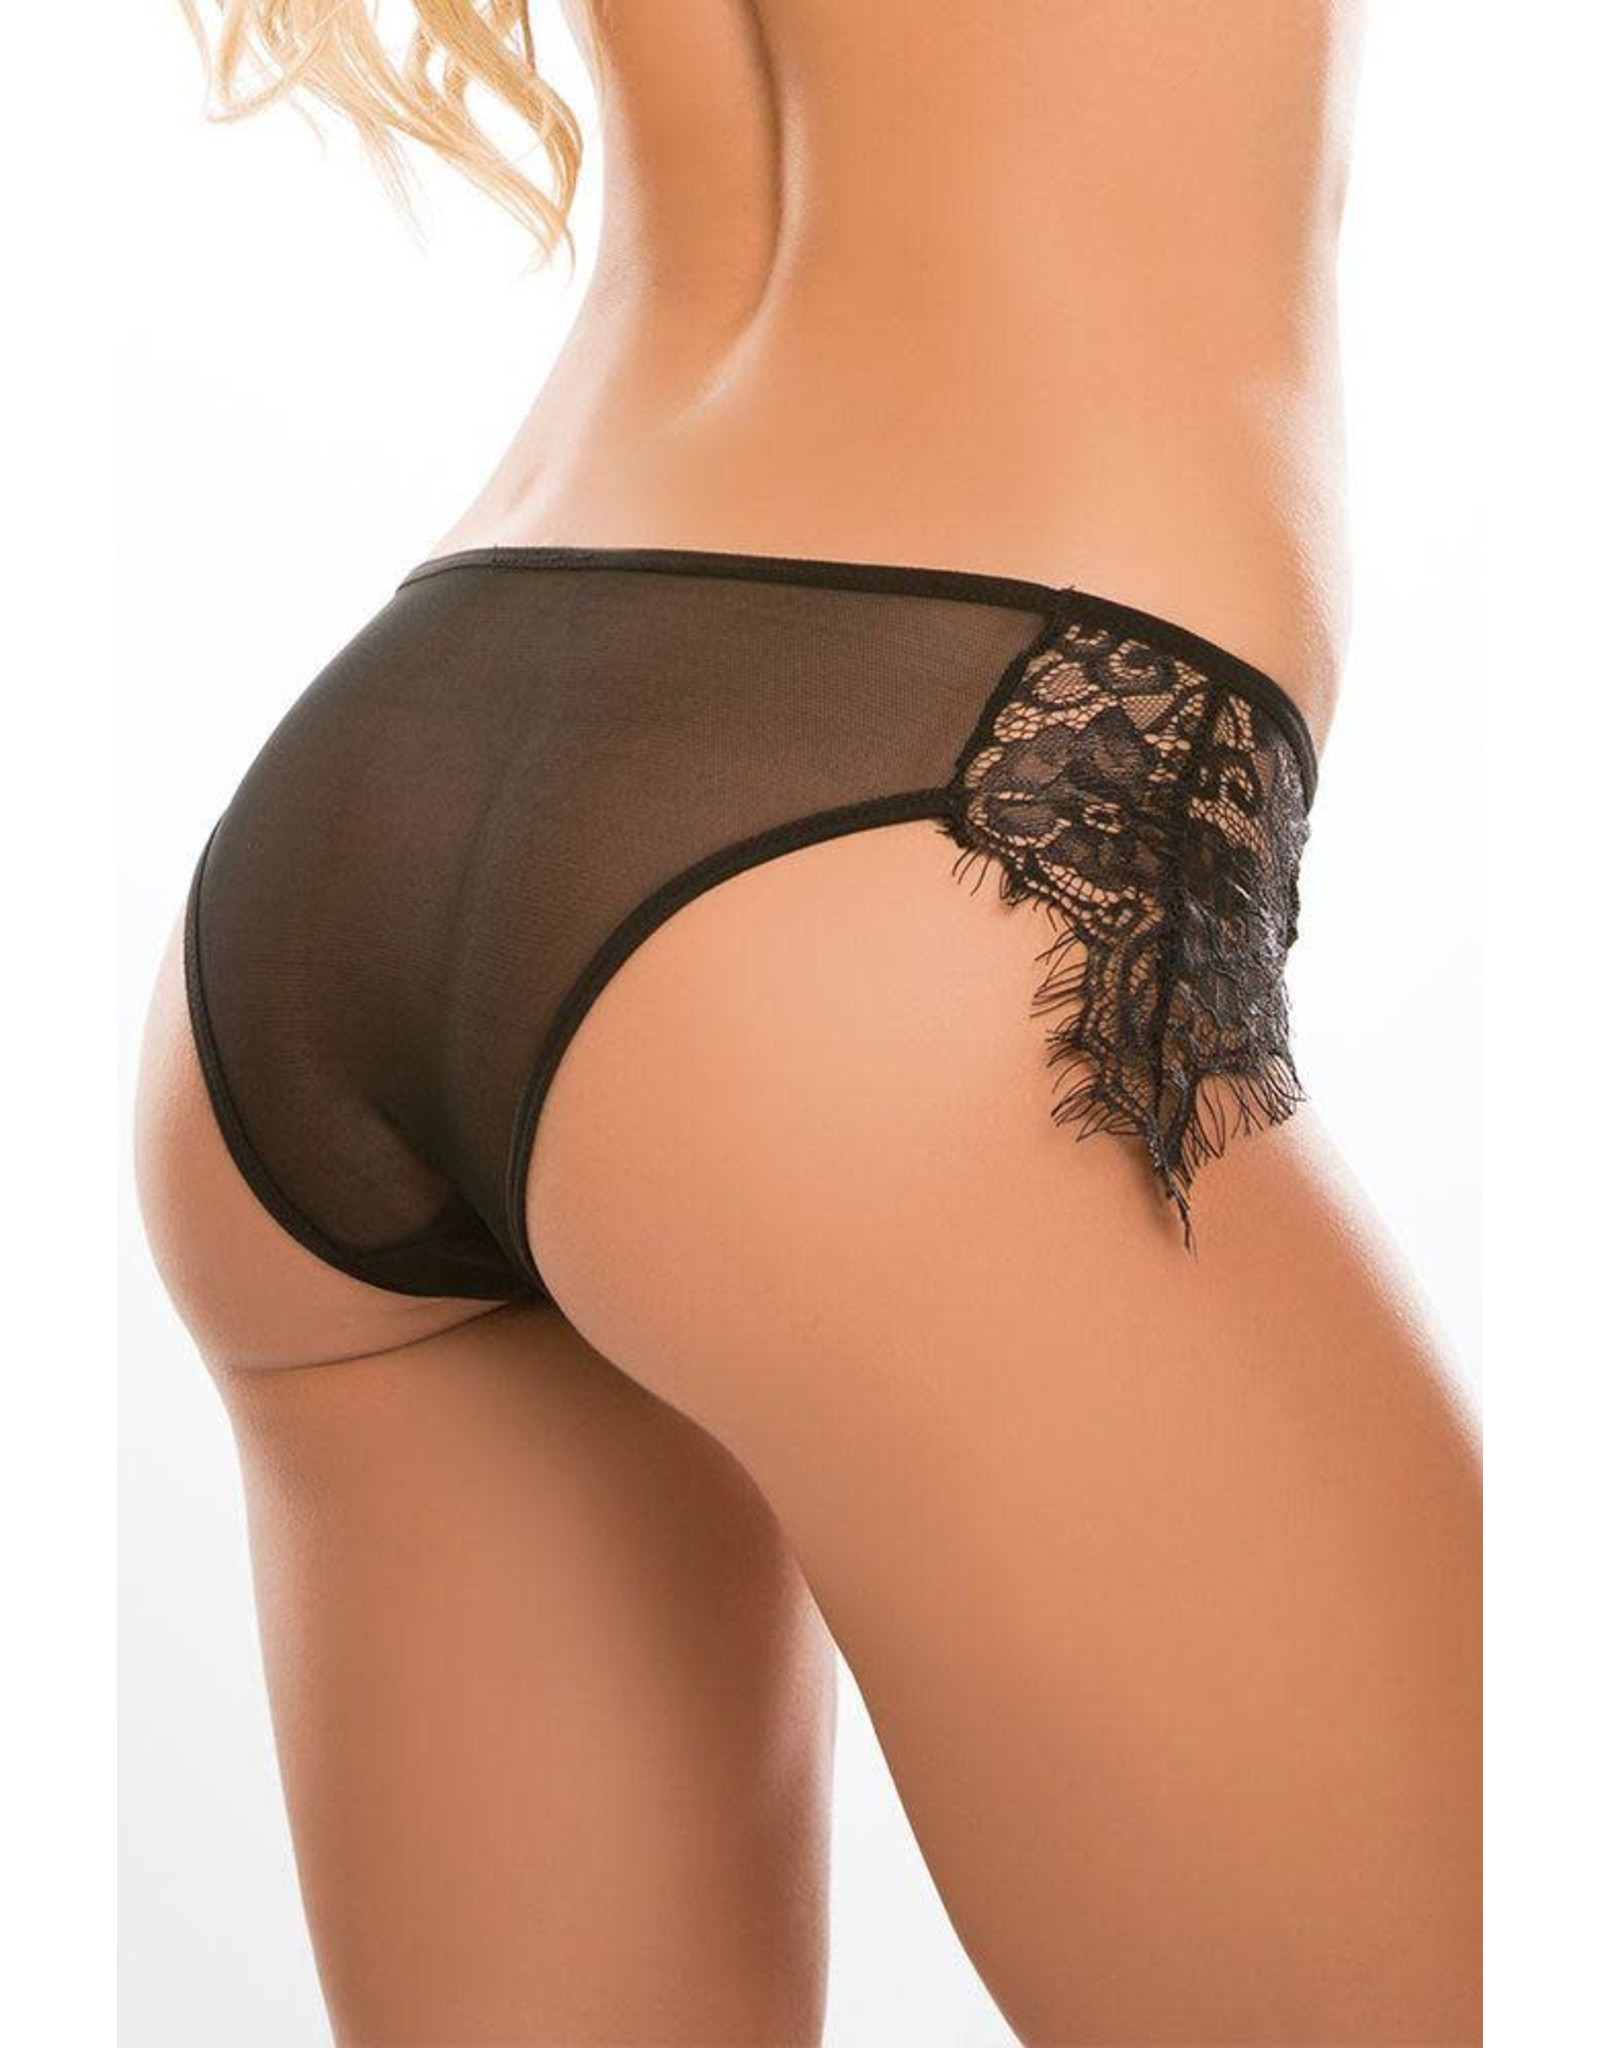 ADORE - LAVISH & LACE - BLACK - ONE SIZE